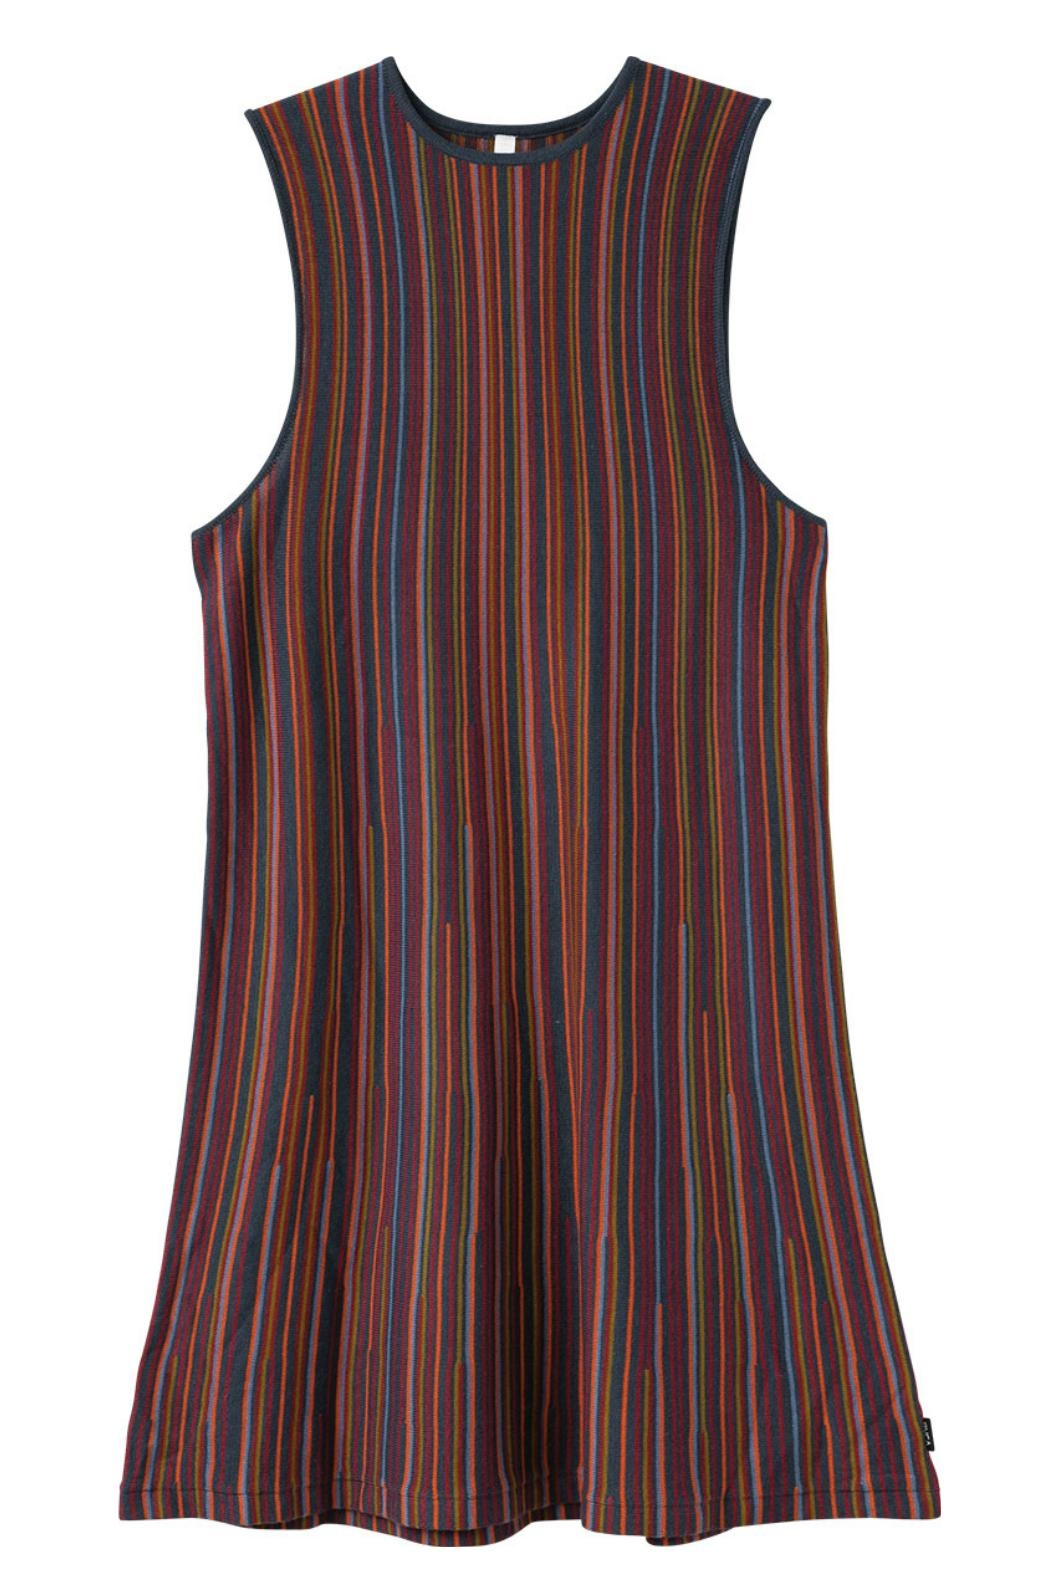 RVCA Striped Knit Dress - Back Cropped Image